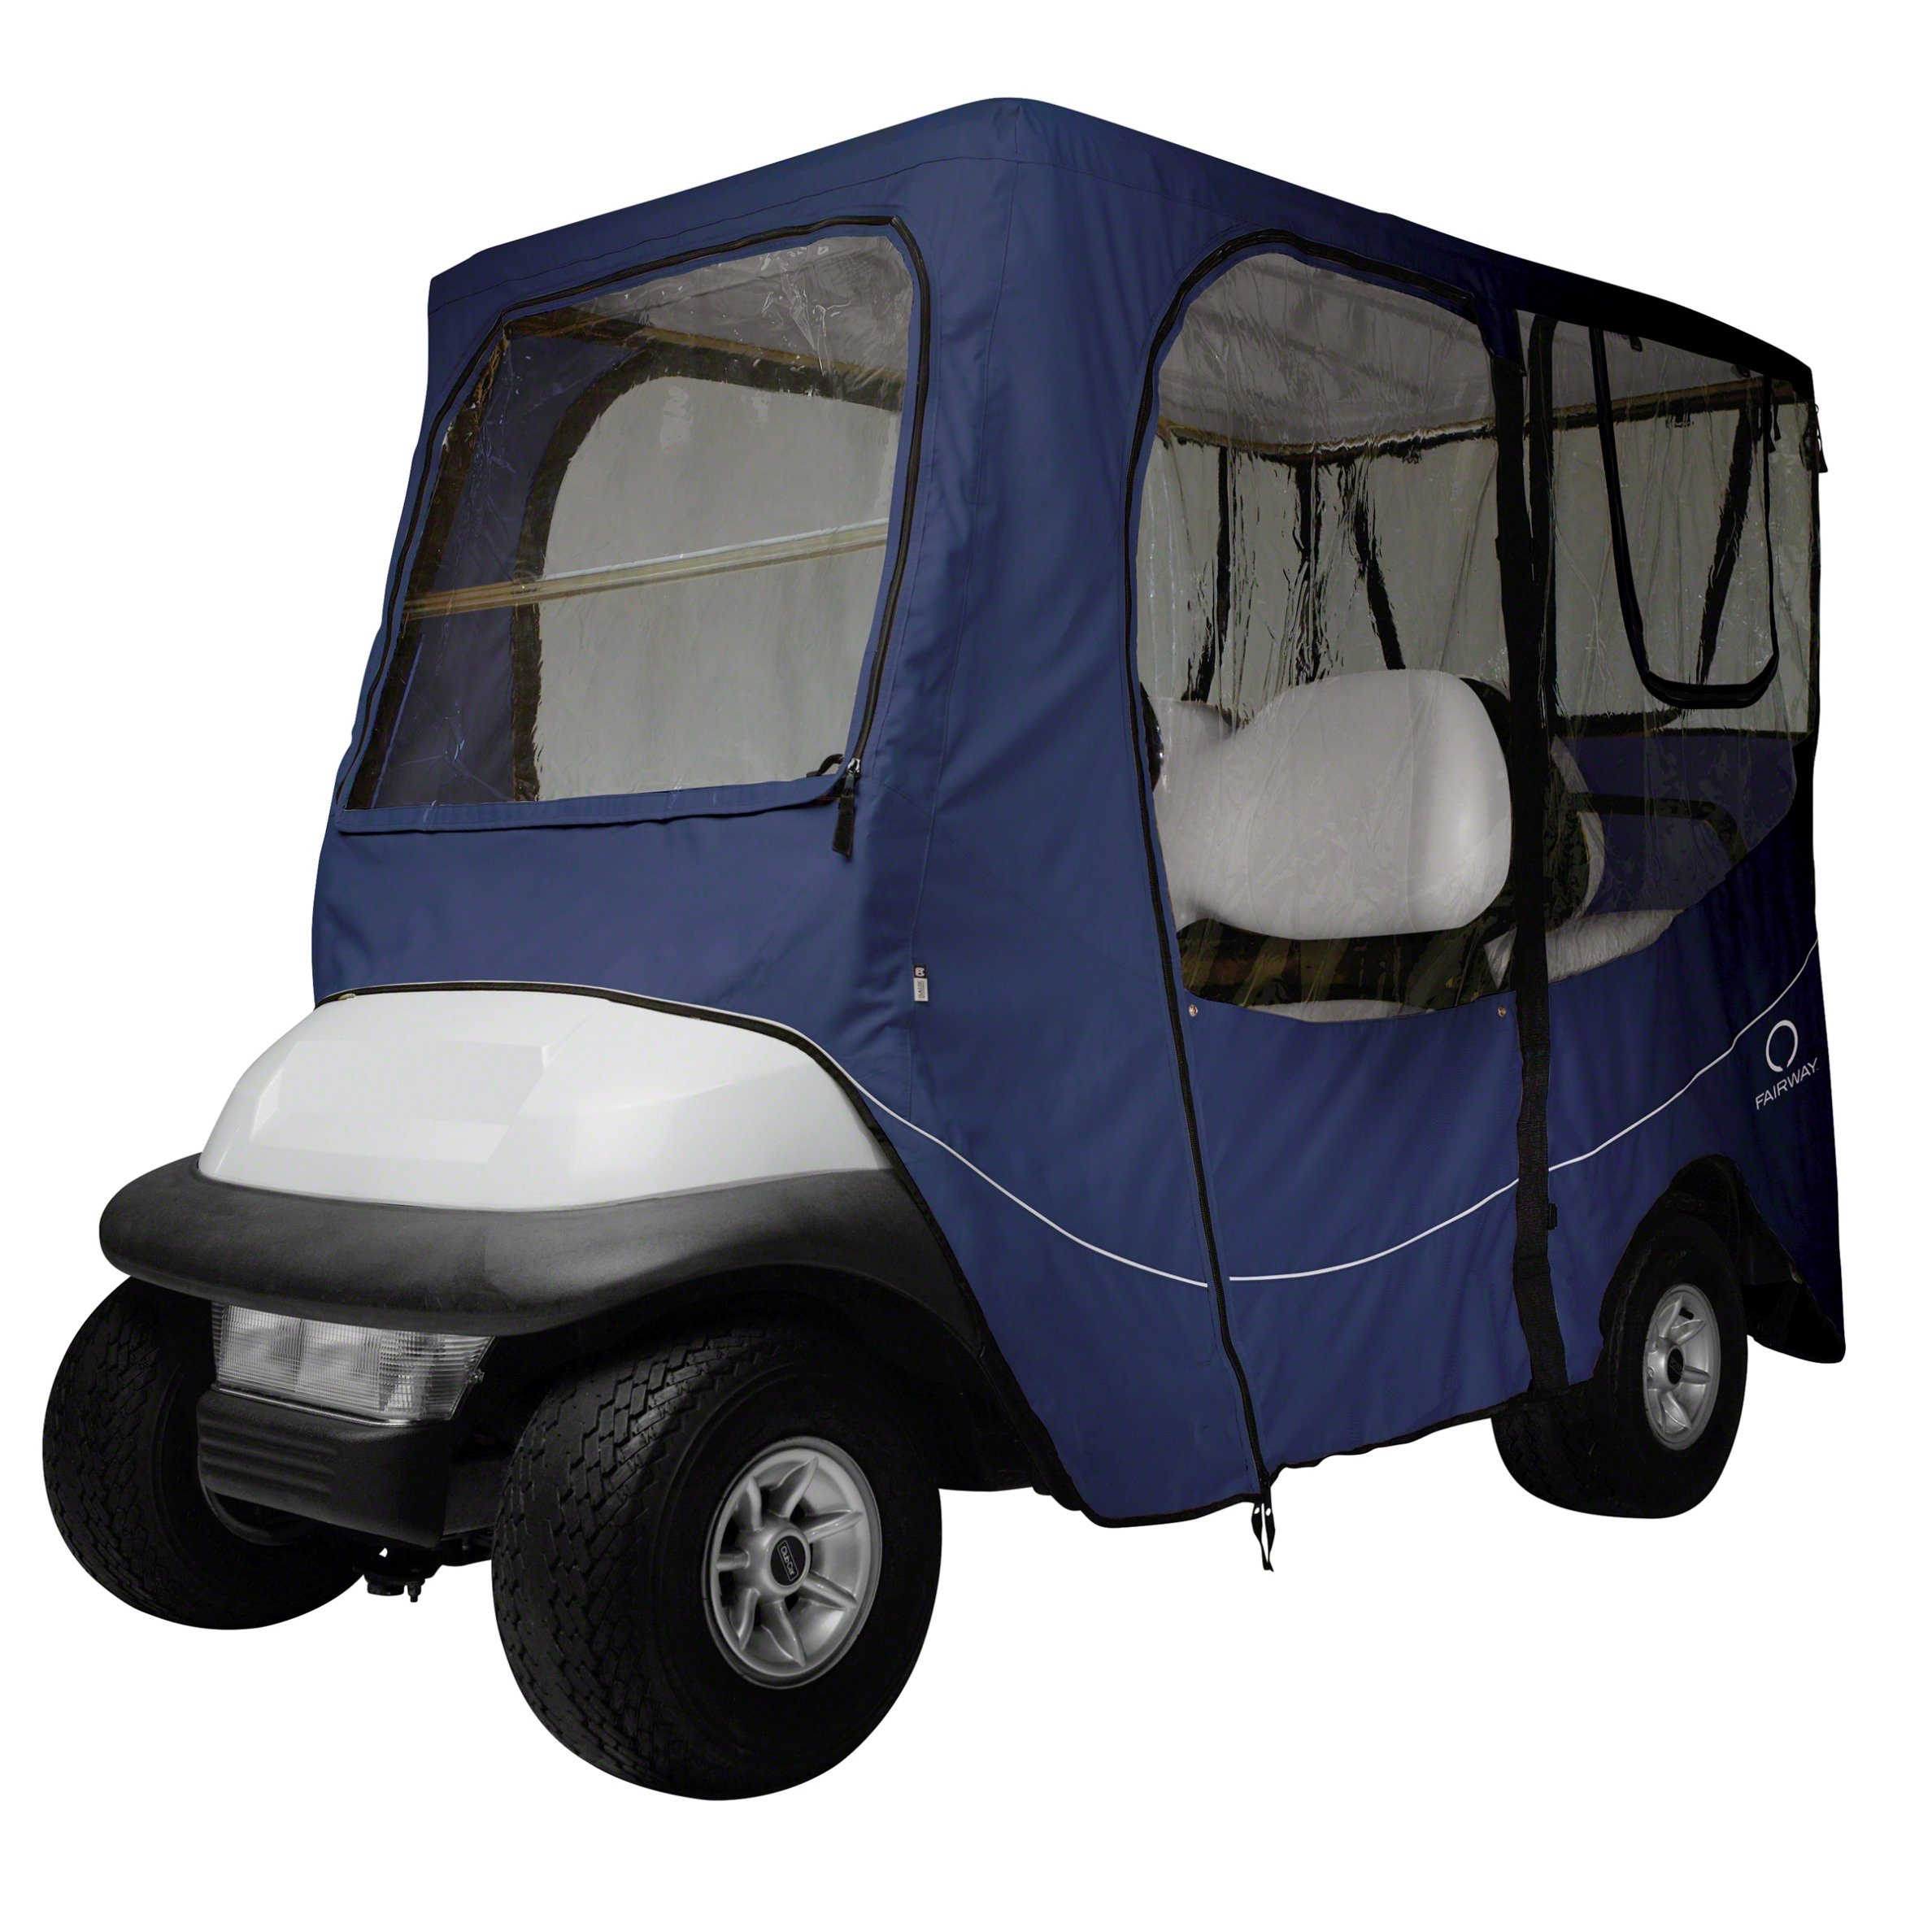 Classic Accessories Fairway Golf Cart Deluxe Enclosure, Navy, Long Roof by Classic Accessories (Image #1)